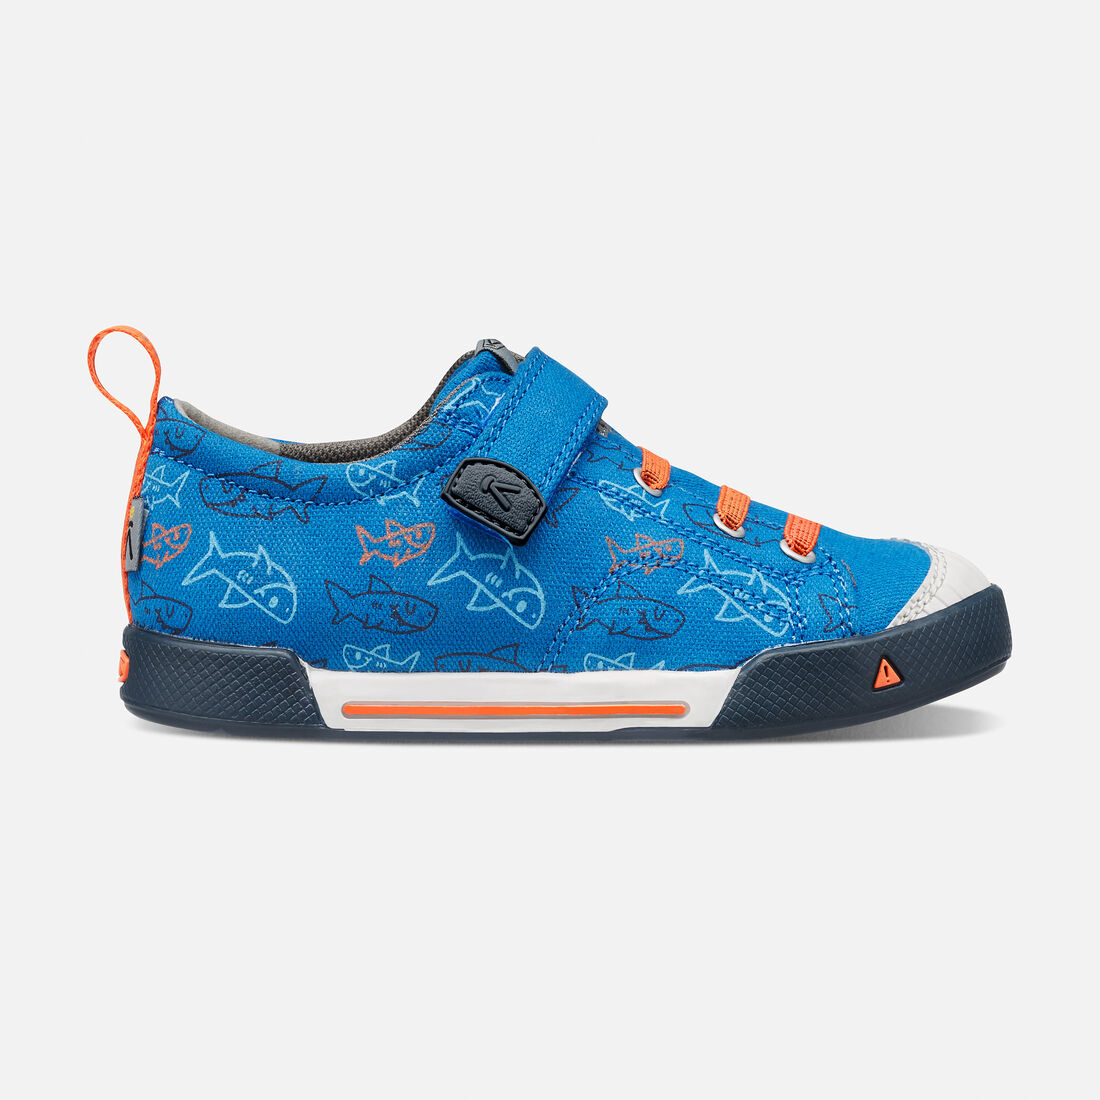 Little Kids' ENCANTO FINLEY LOW in Imperial Blue Sharks - large view.